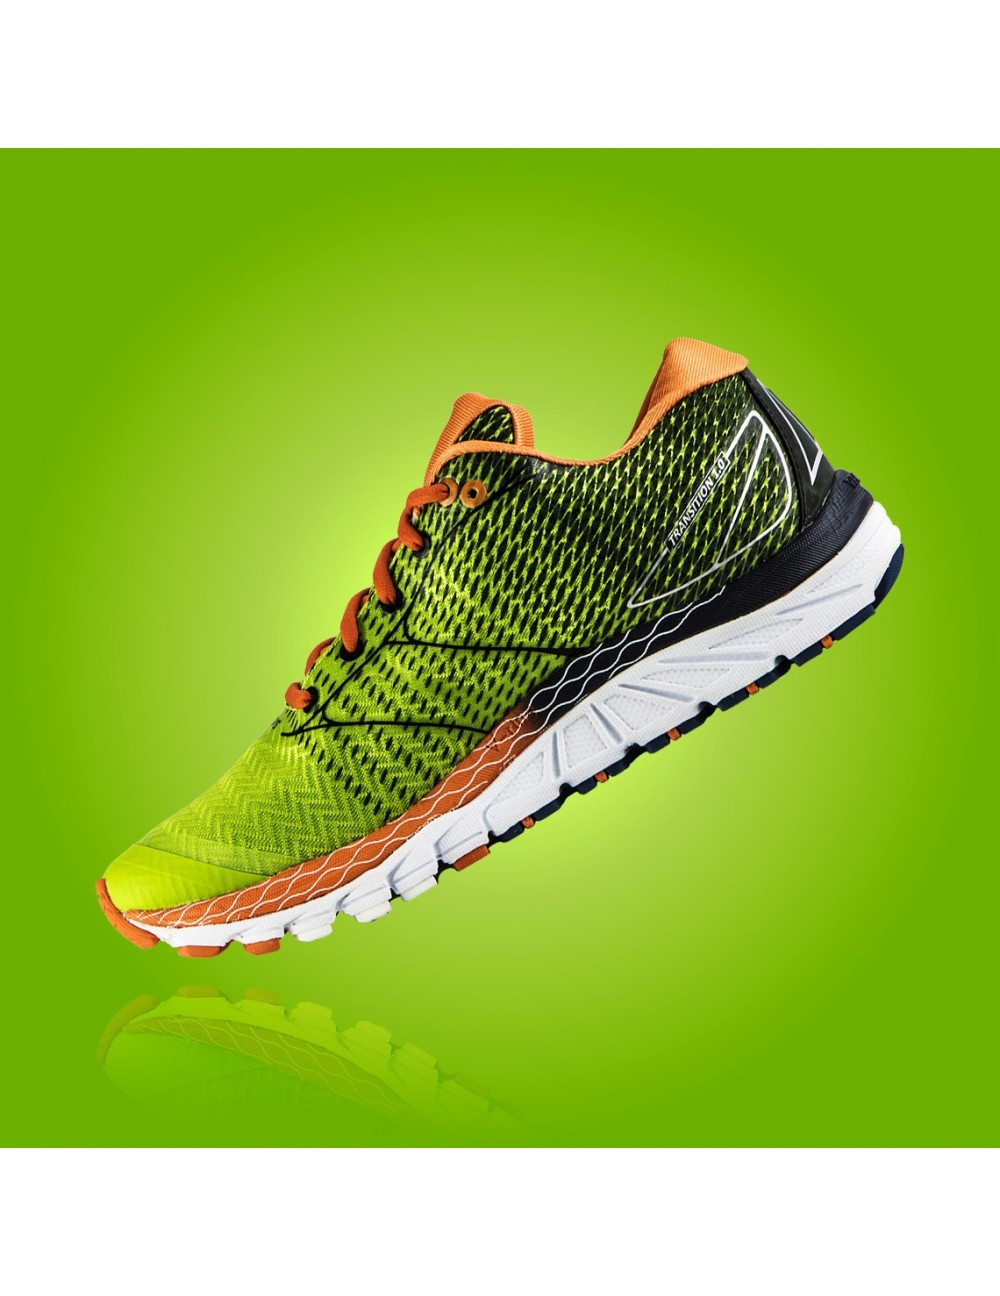 France – Run Made In Chaussures Écolo Prêts TestingVeets®Les fY6yv7bg